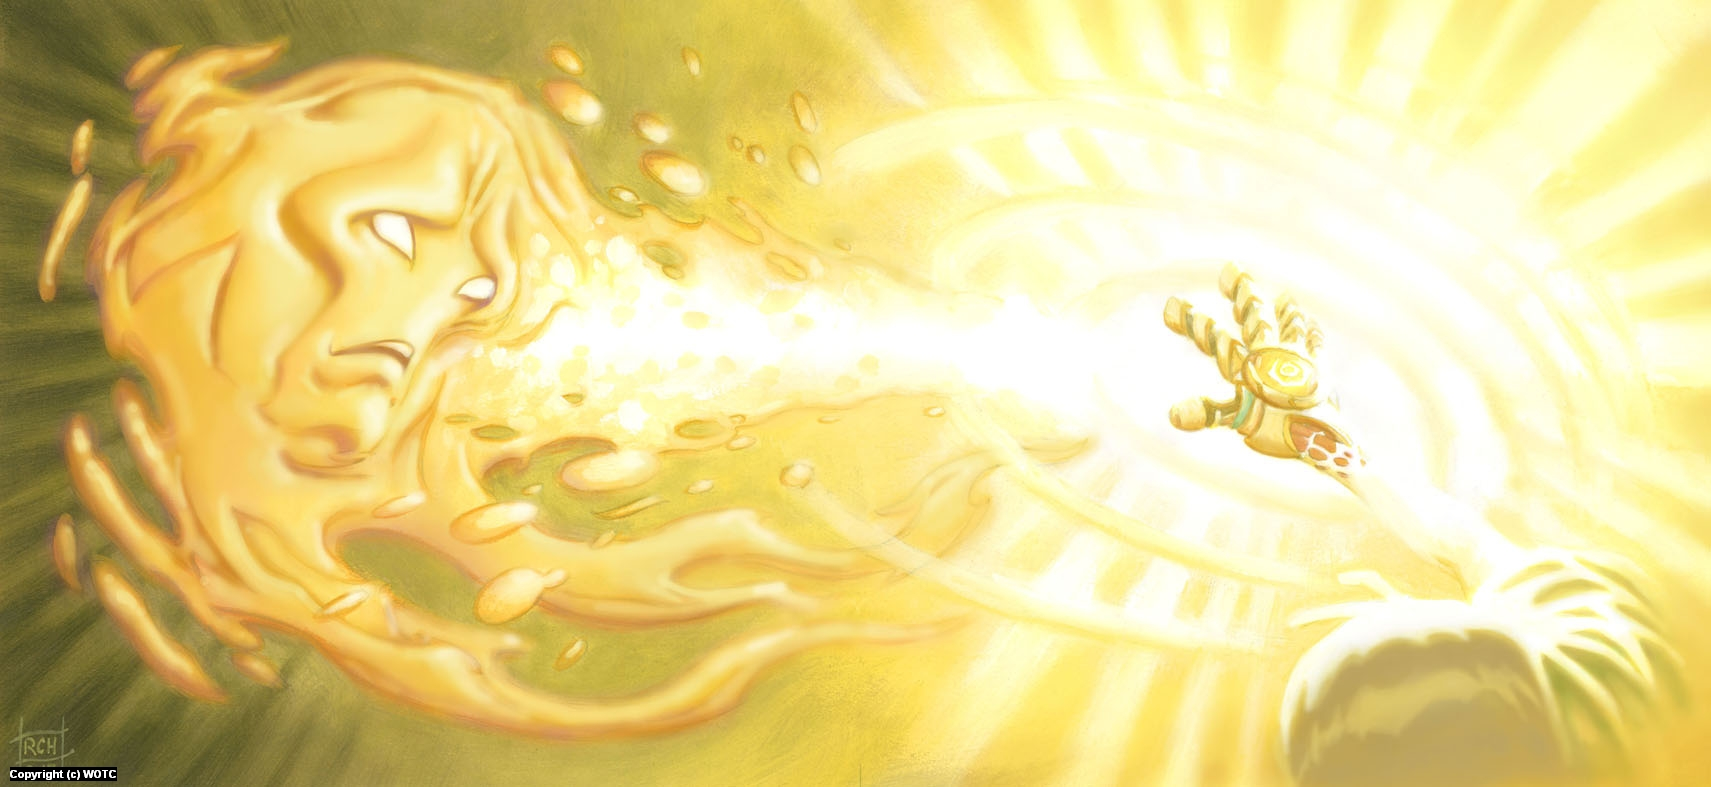 Mystic of Light - Radiant Purification Artwork by Ralph Horsley